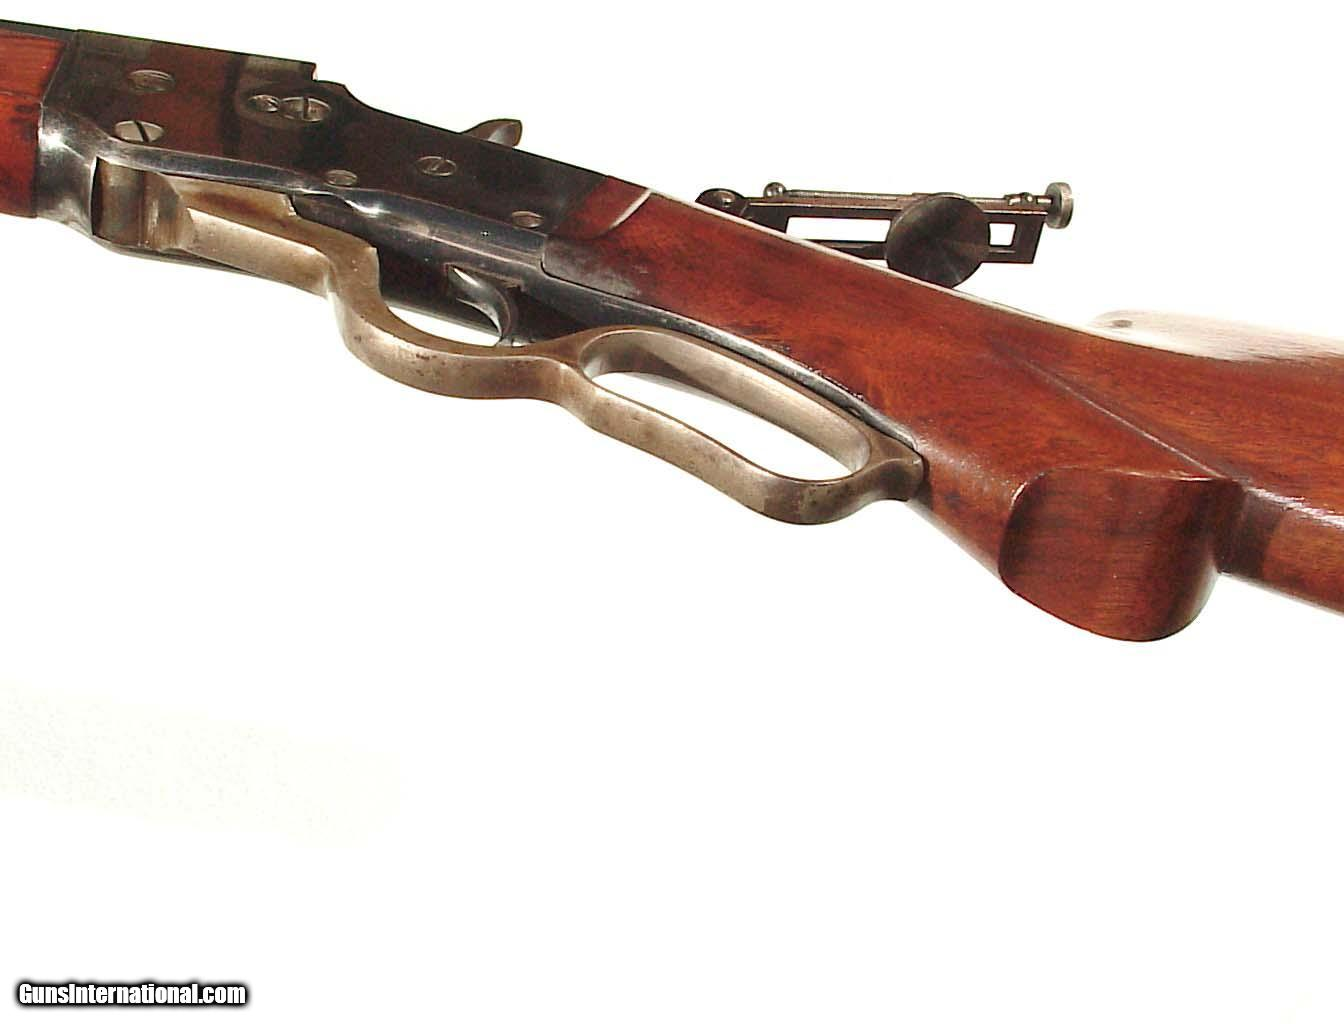 rifle dating Thus, the type 38 rifle was designed in the 38th year of the reign of  all  japanese military rifles had serial numbers except extremely rare.